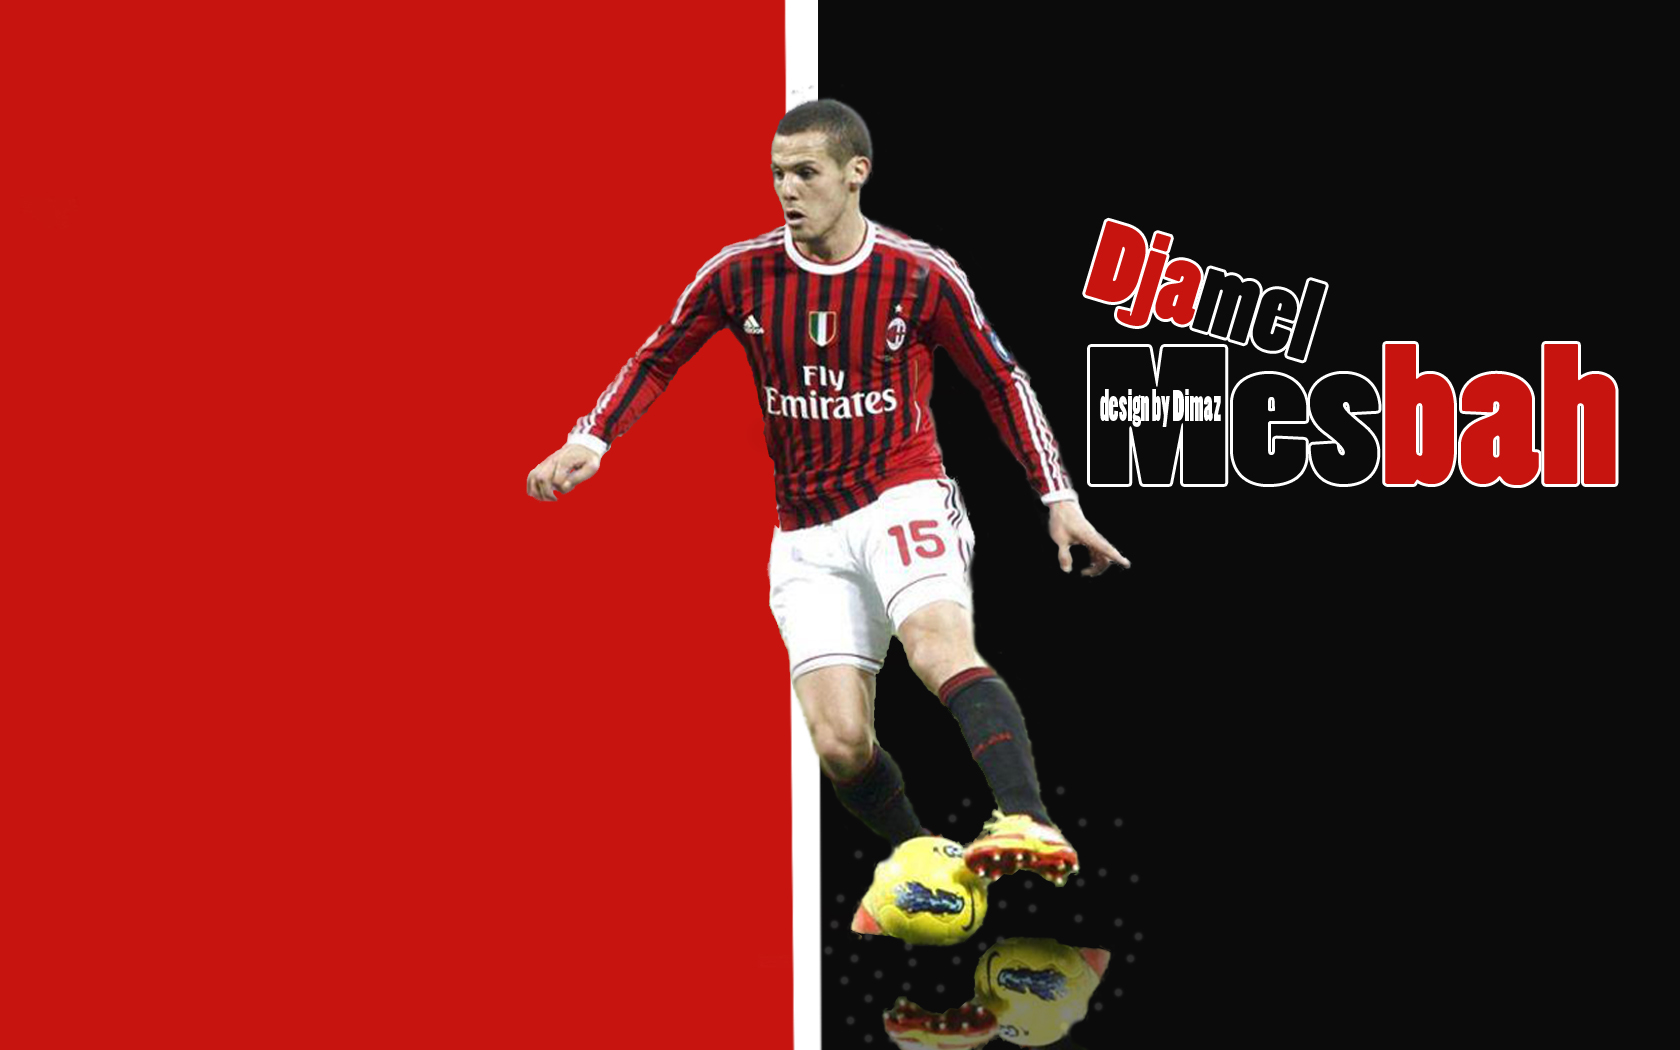 Djamel Mesbah AC Milan Wallpapers Android Pad Tablet PC 1680x1050